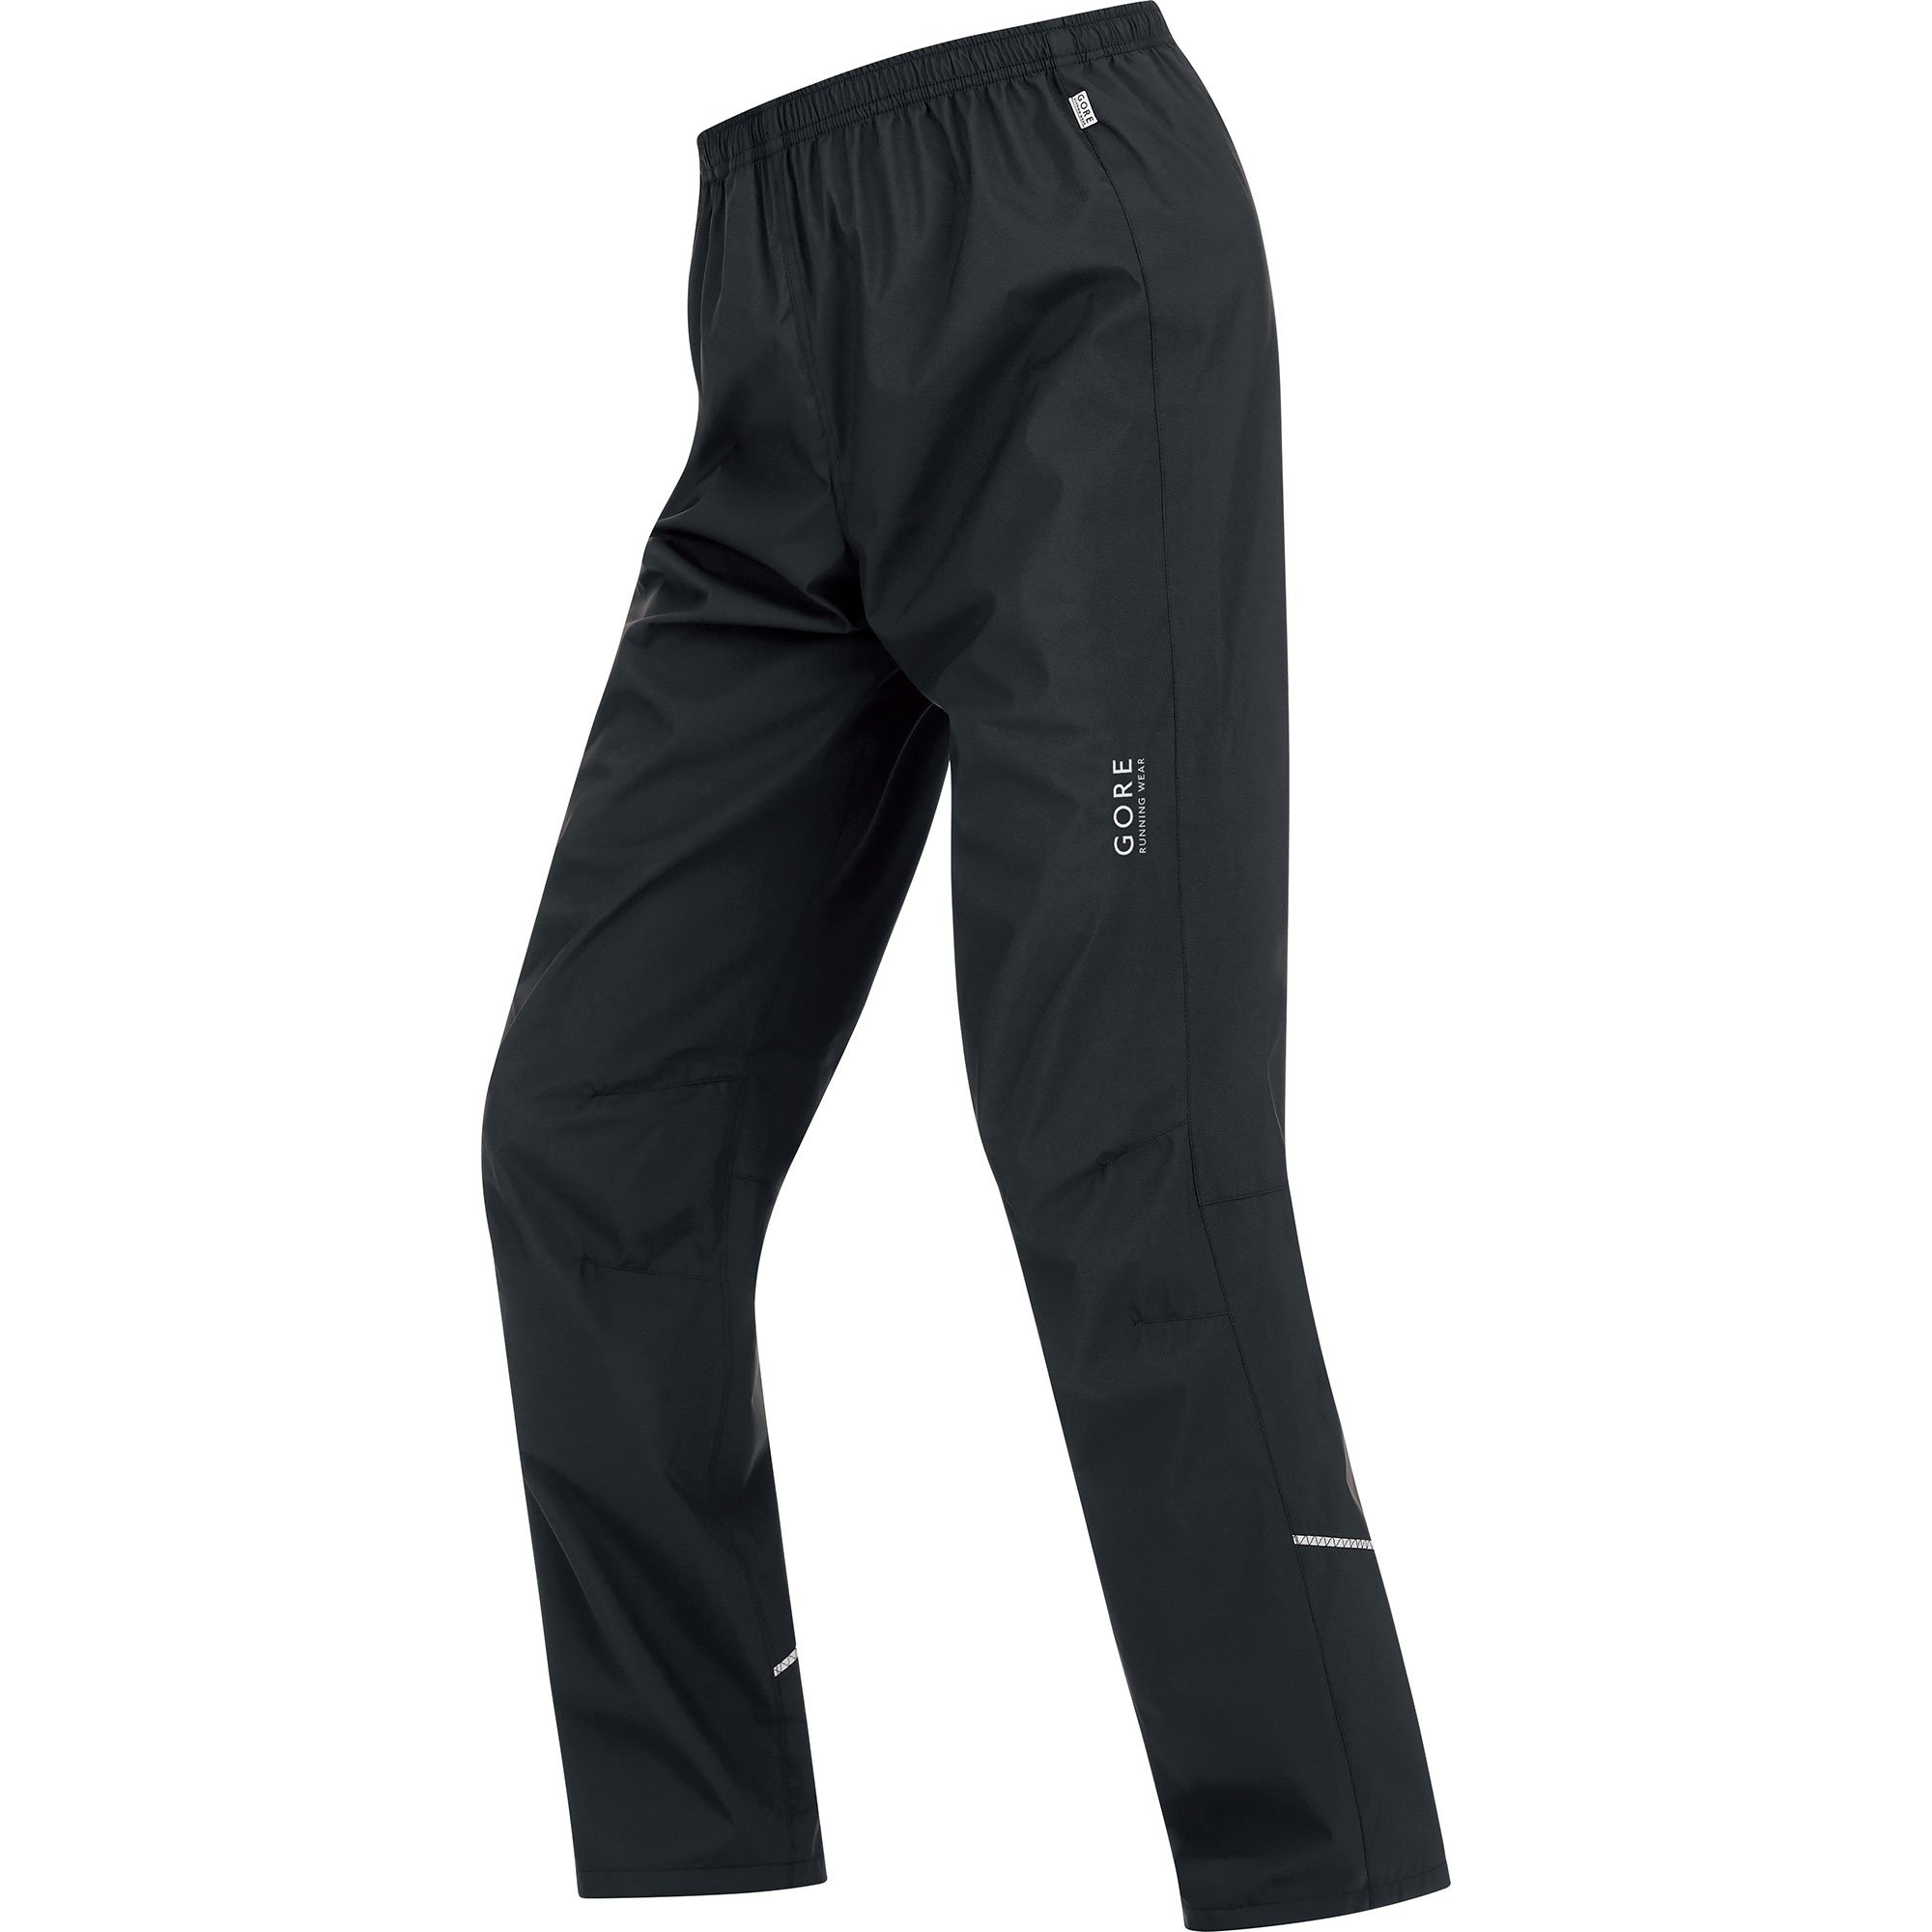 Gore Running Wear Men's Essential Active Shell Pant, Black, X-Large by Gore Running Wear (Image #4)